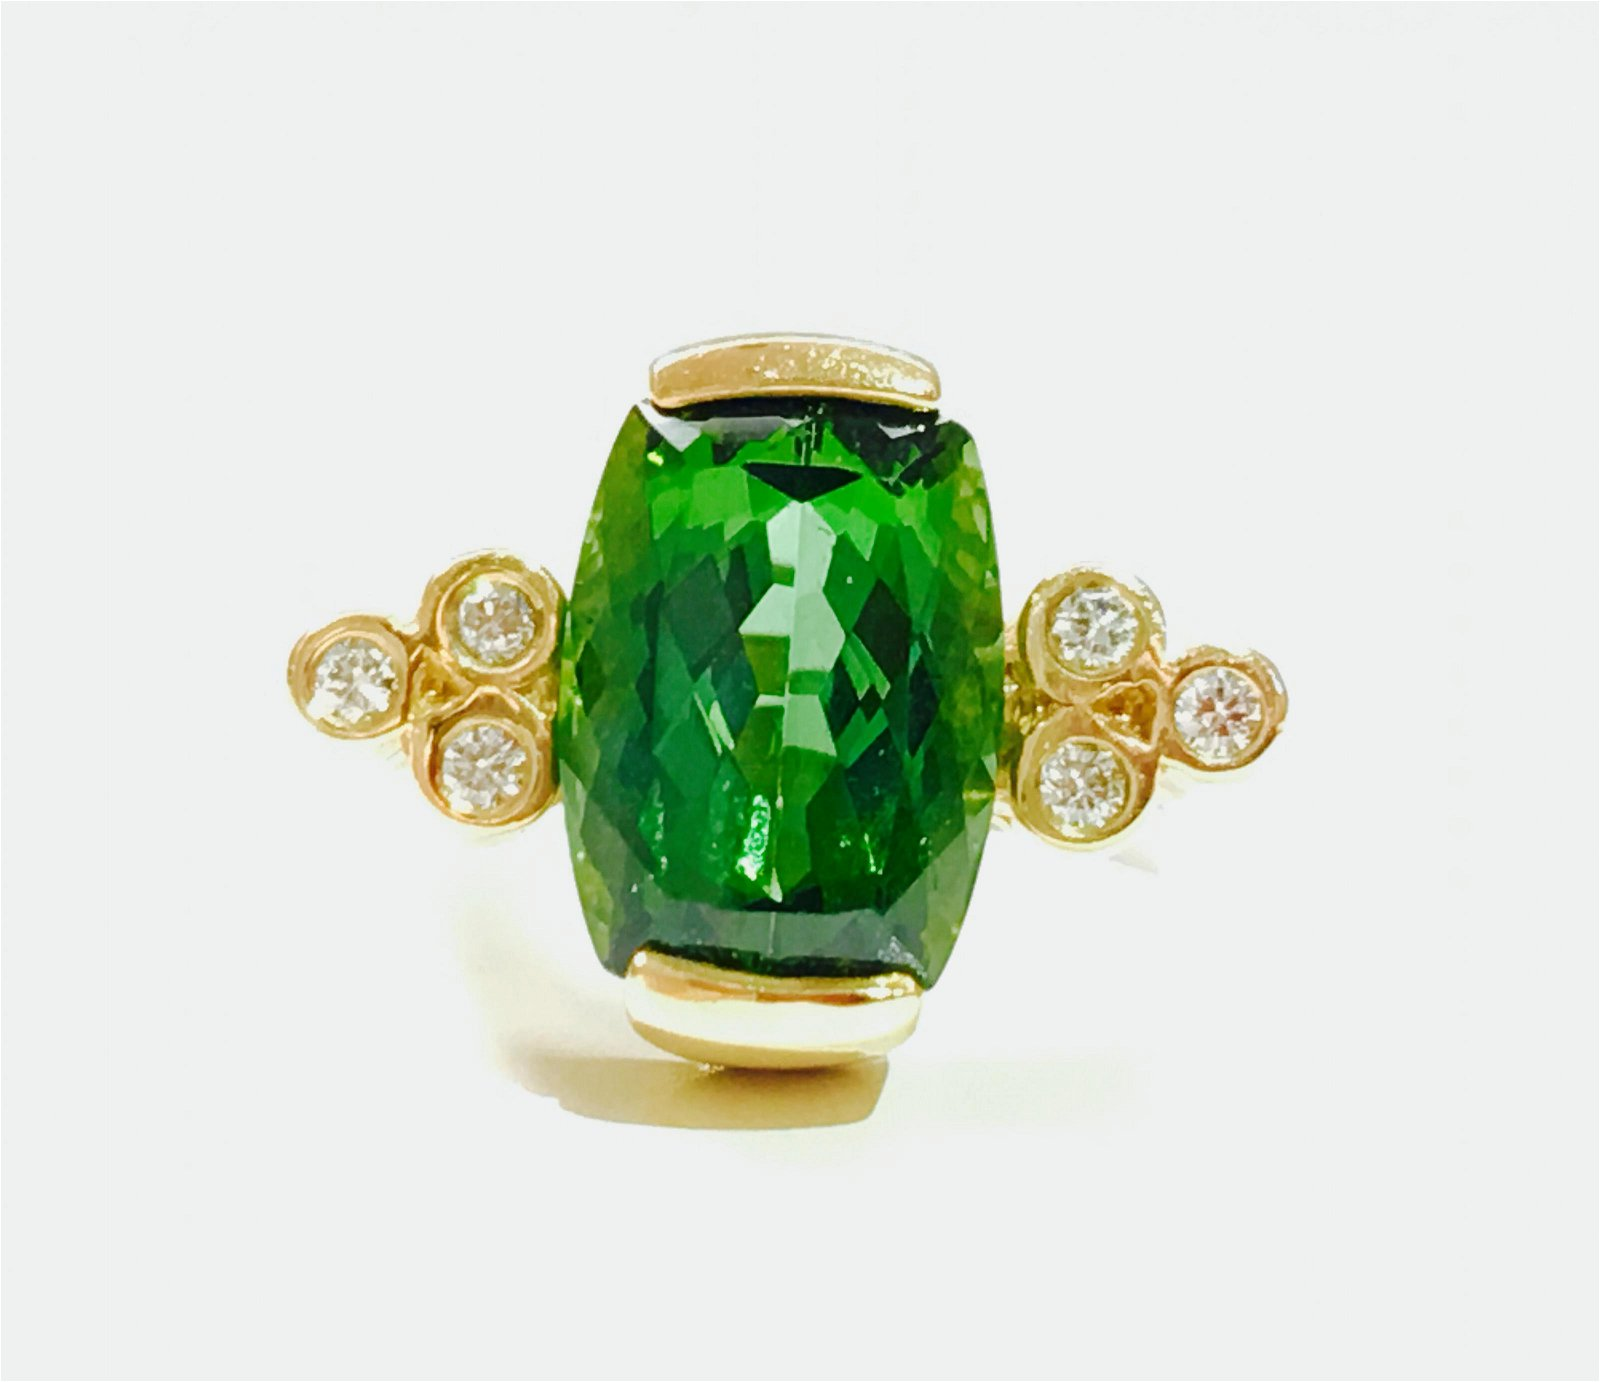 14K Gold, 4.00 CT Green Tourmaline and Diamond Ring